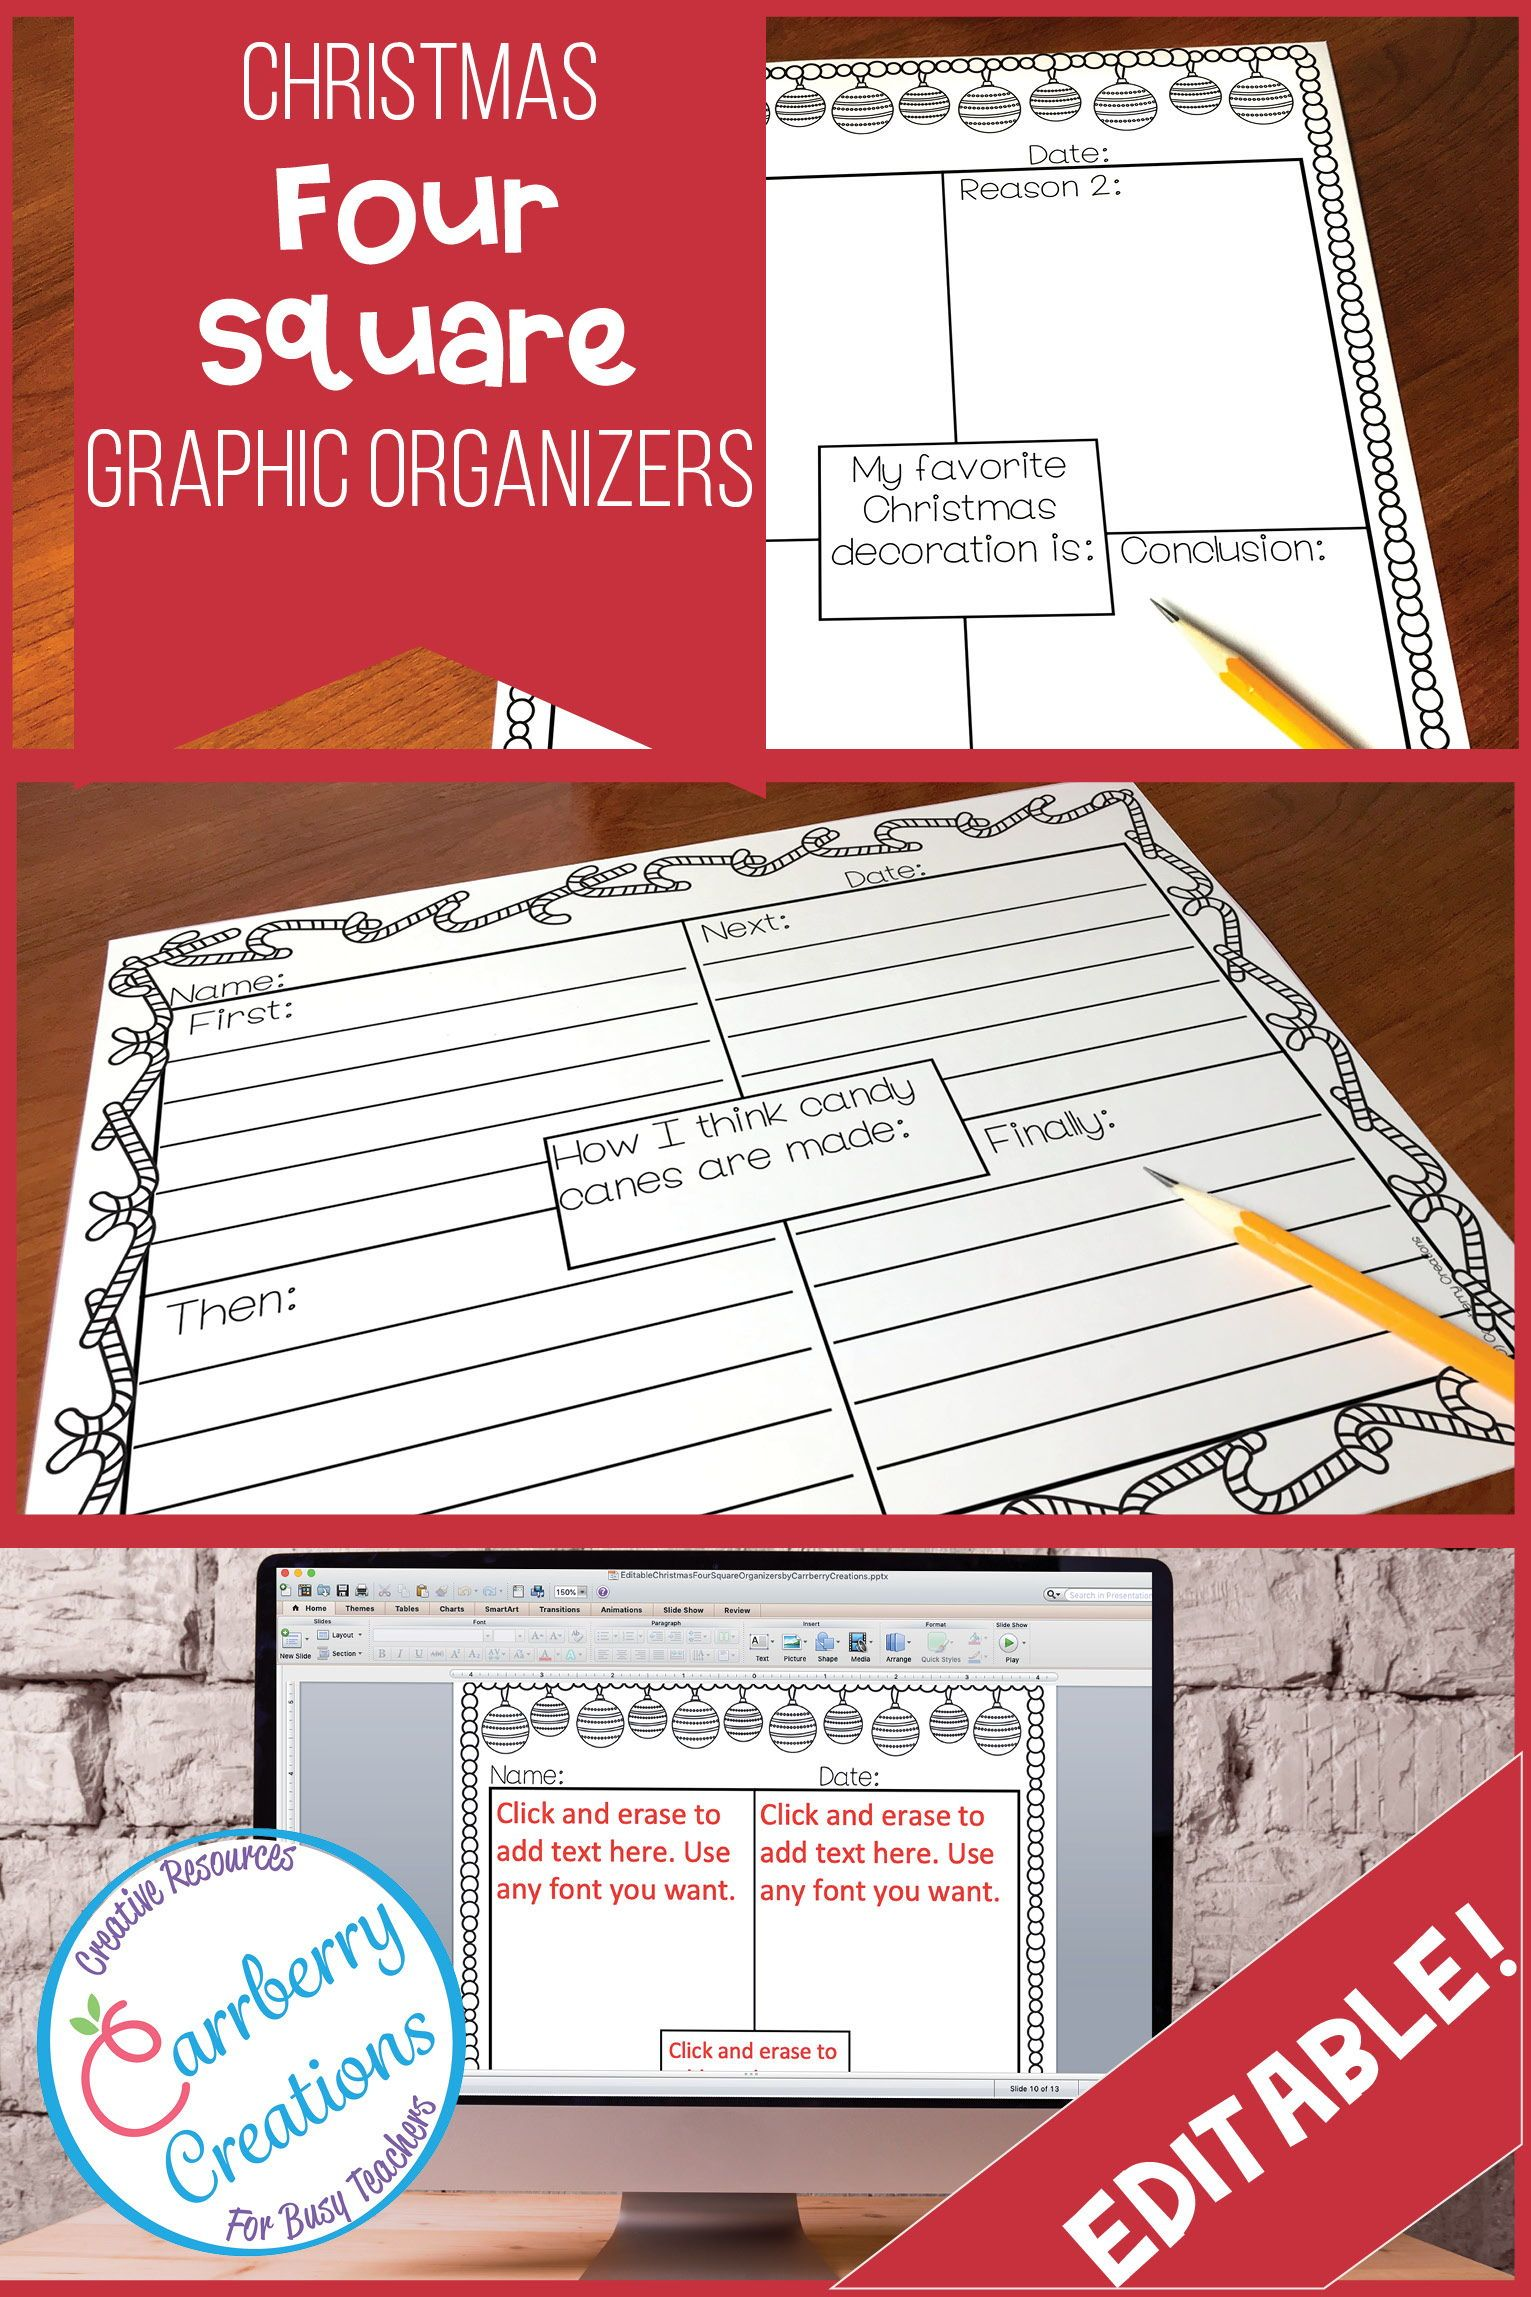 These Christmas Writing Four Square Graphic Organizers Are Simple To Use It Comes With Pre Filled Prompts And Editable Pages Make Lesson